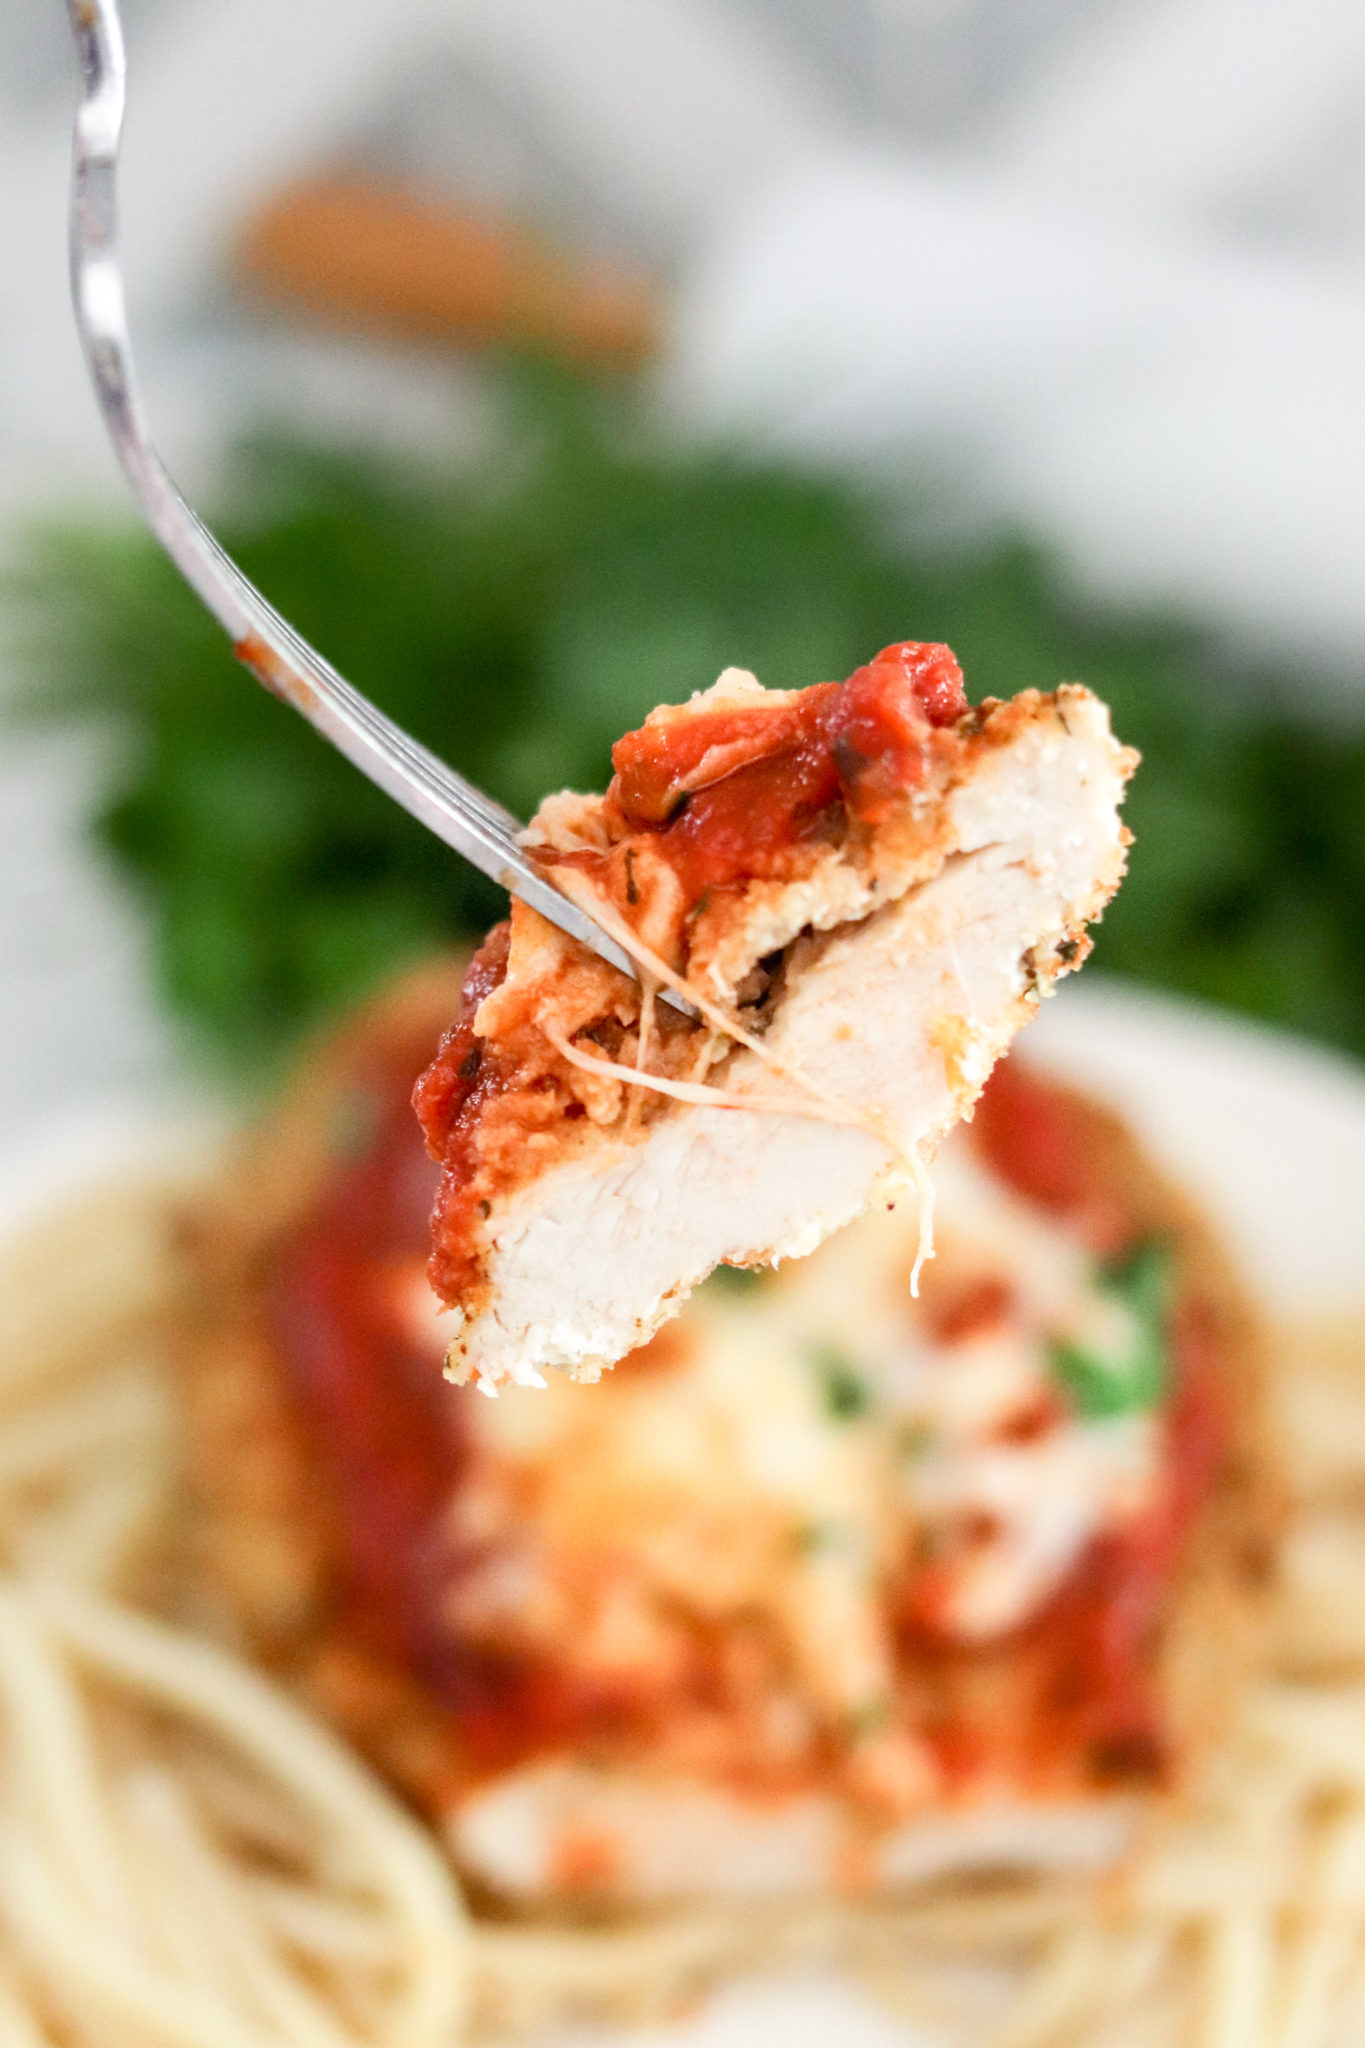 Air Fryer Chicken Parmesan is delicious and healthier than the traditionally fried version. This meal is done in less than 15 minutes, and the chicken is moist and full of flavor!